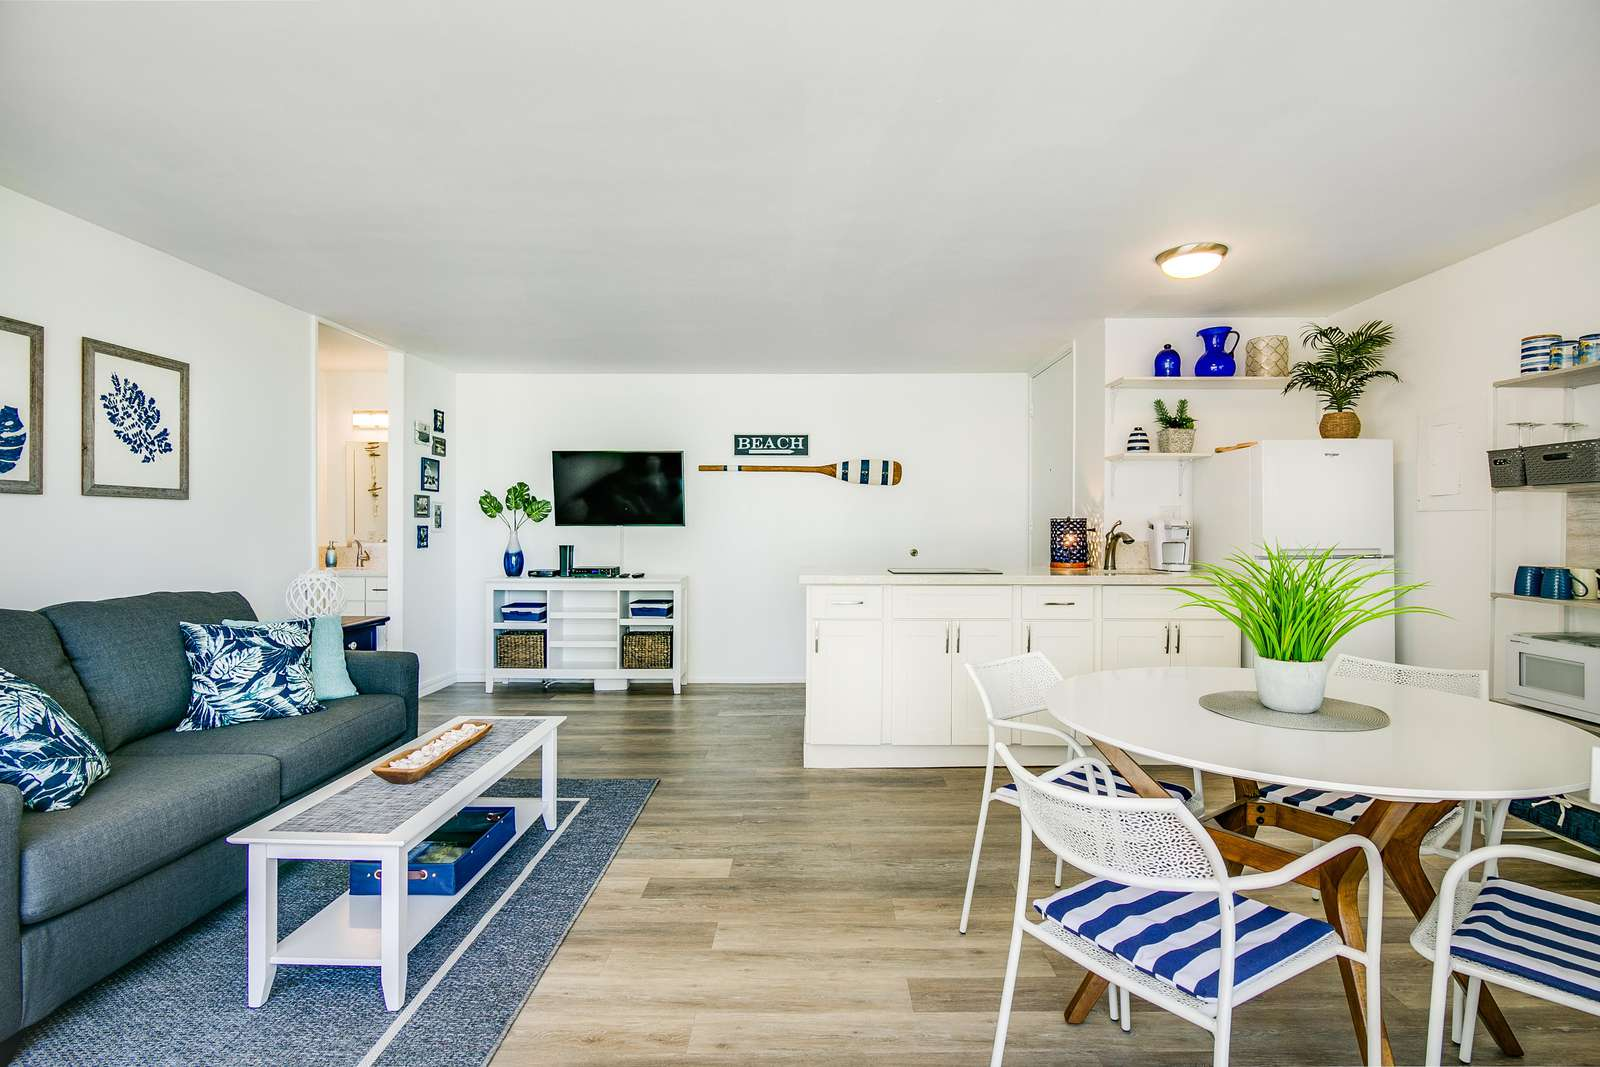 Beautifully renovated and furnished with an eye to every detail